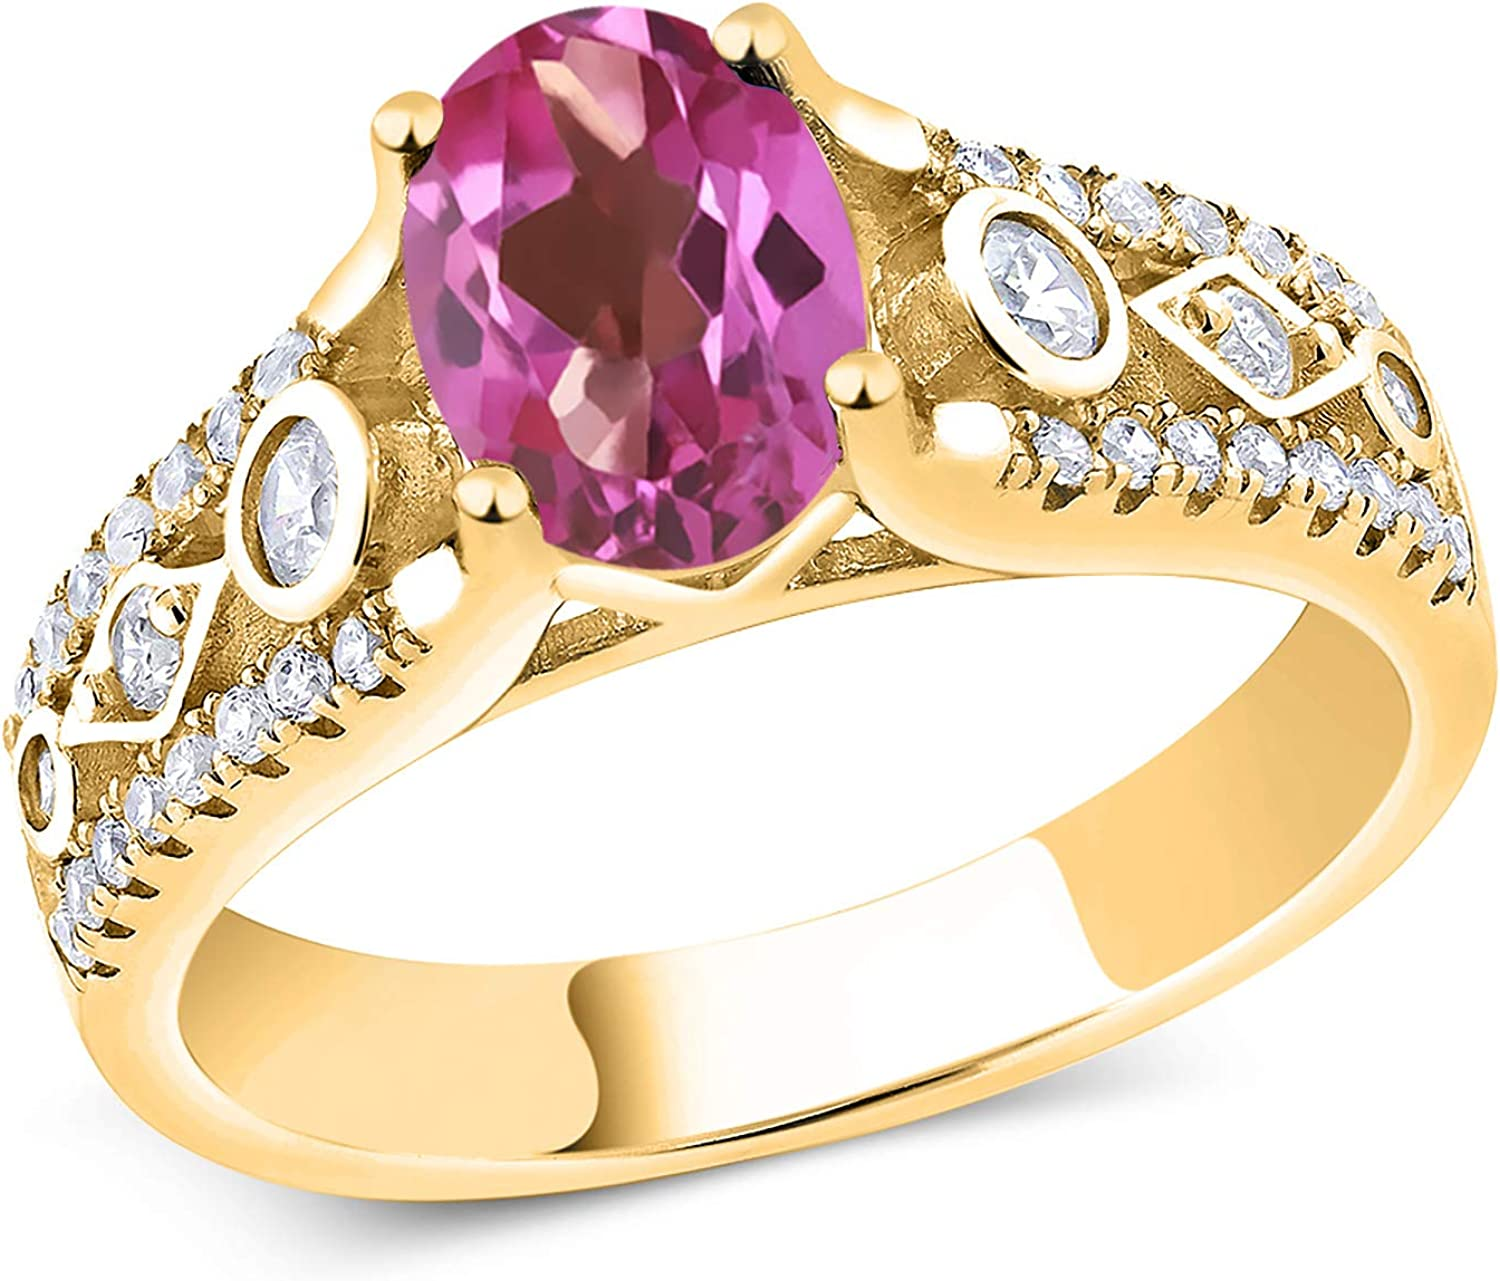 Gem Stone King 1.86 Ct Oval Max 68% Ranking TOP5 OFF Pink Yellow 18K Gold Pl Topaz Mystic